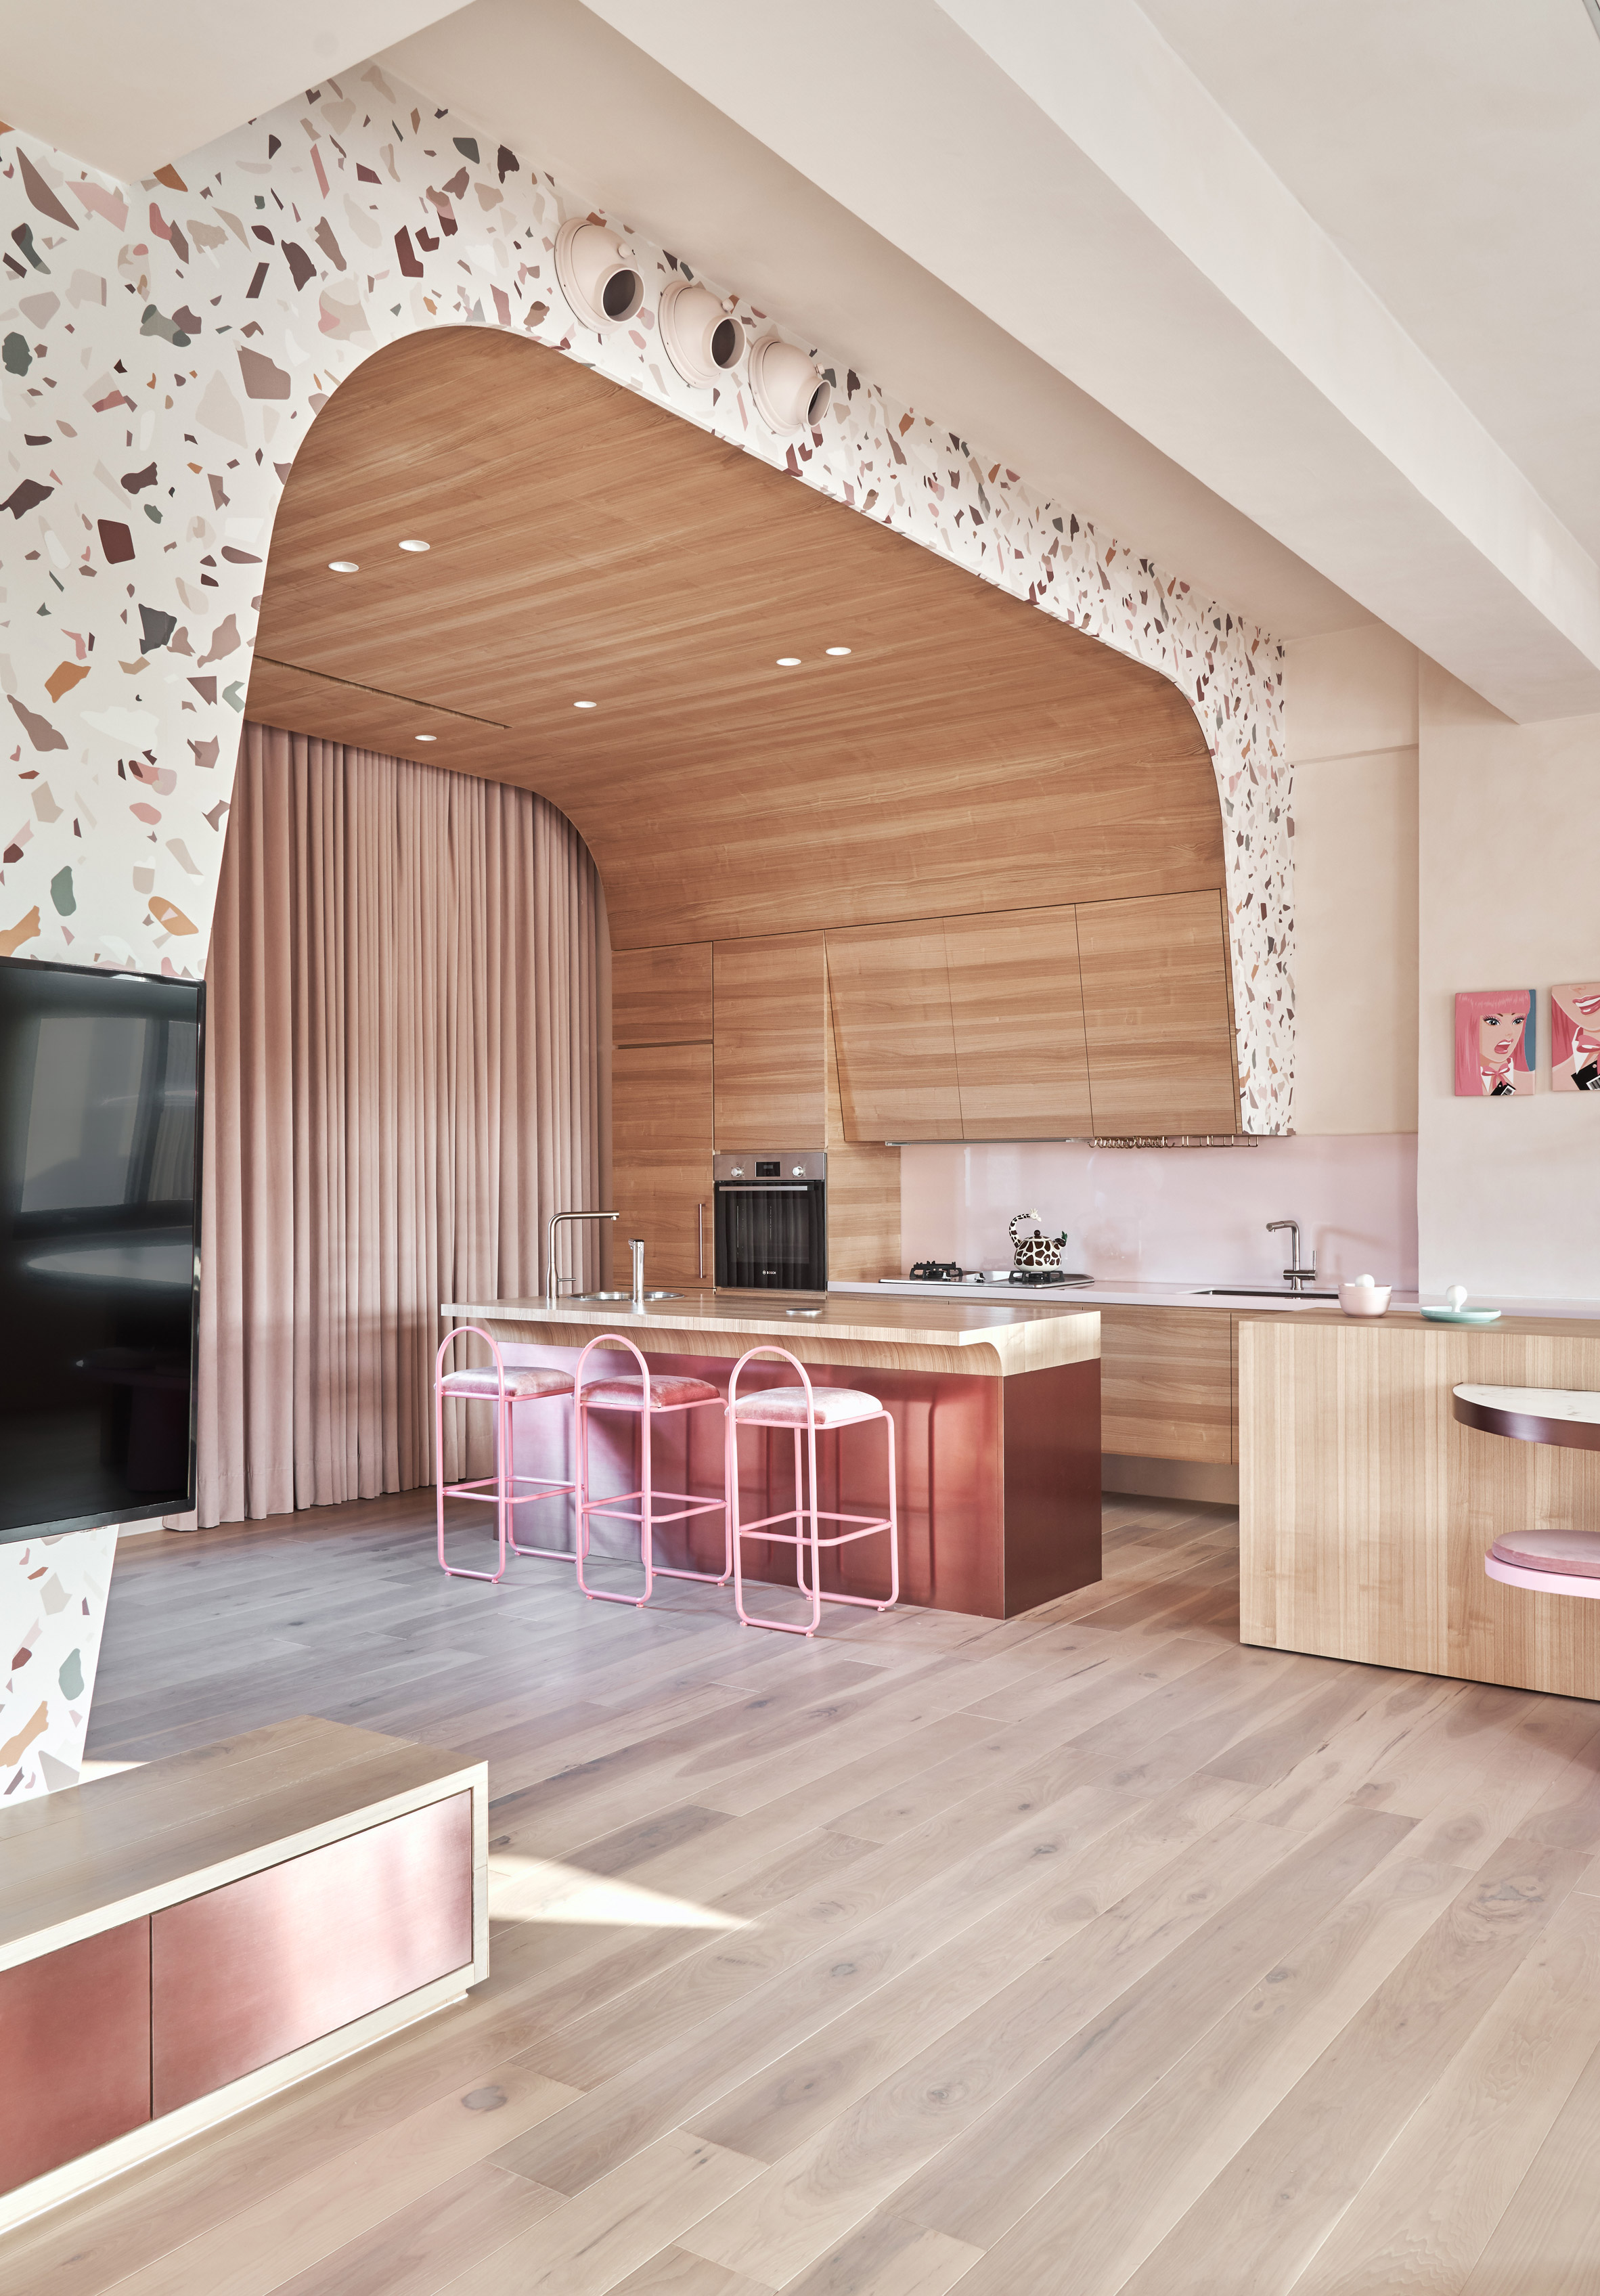 the-pink-house-kc-design-studio-holiday-home-taiwan_dezeen_2364_col_18.jpg